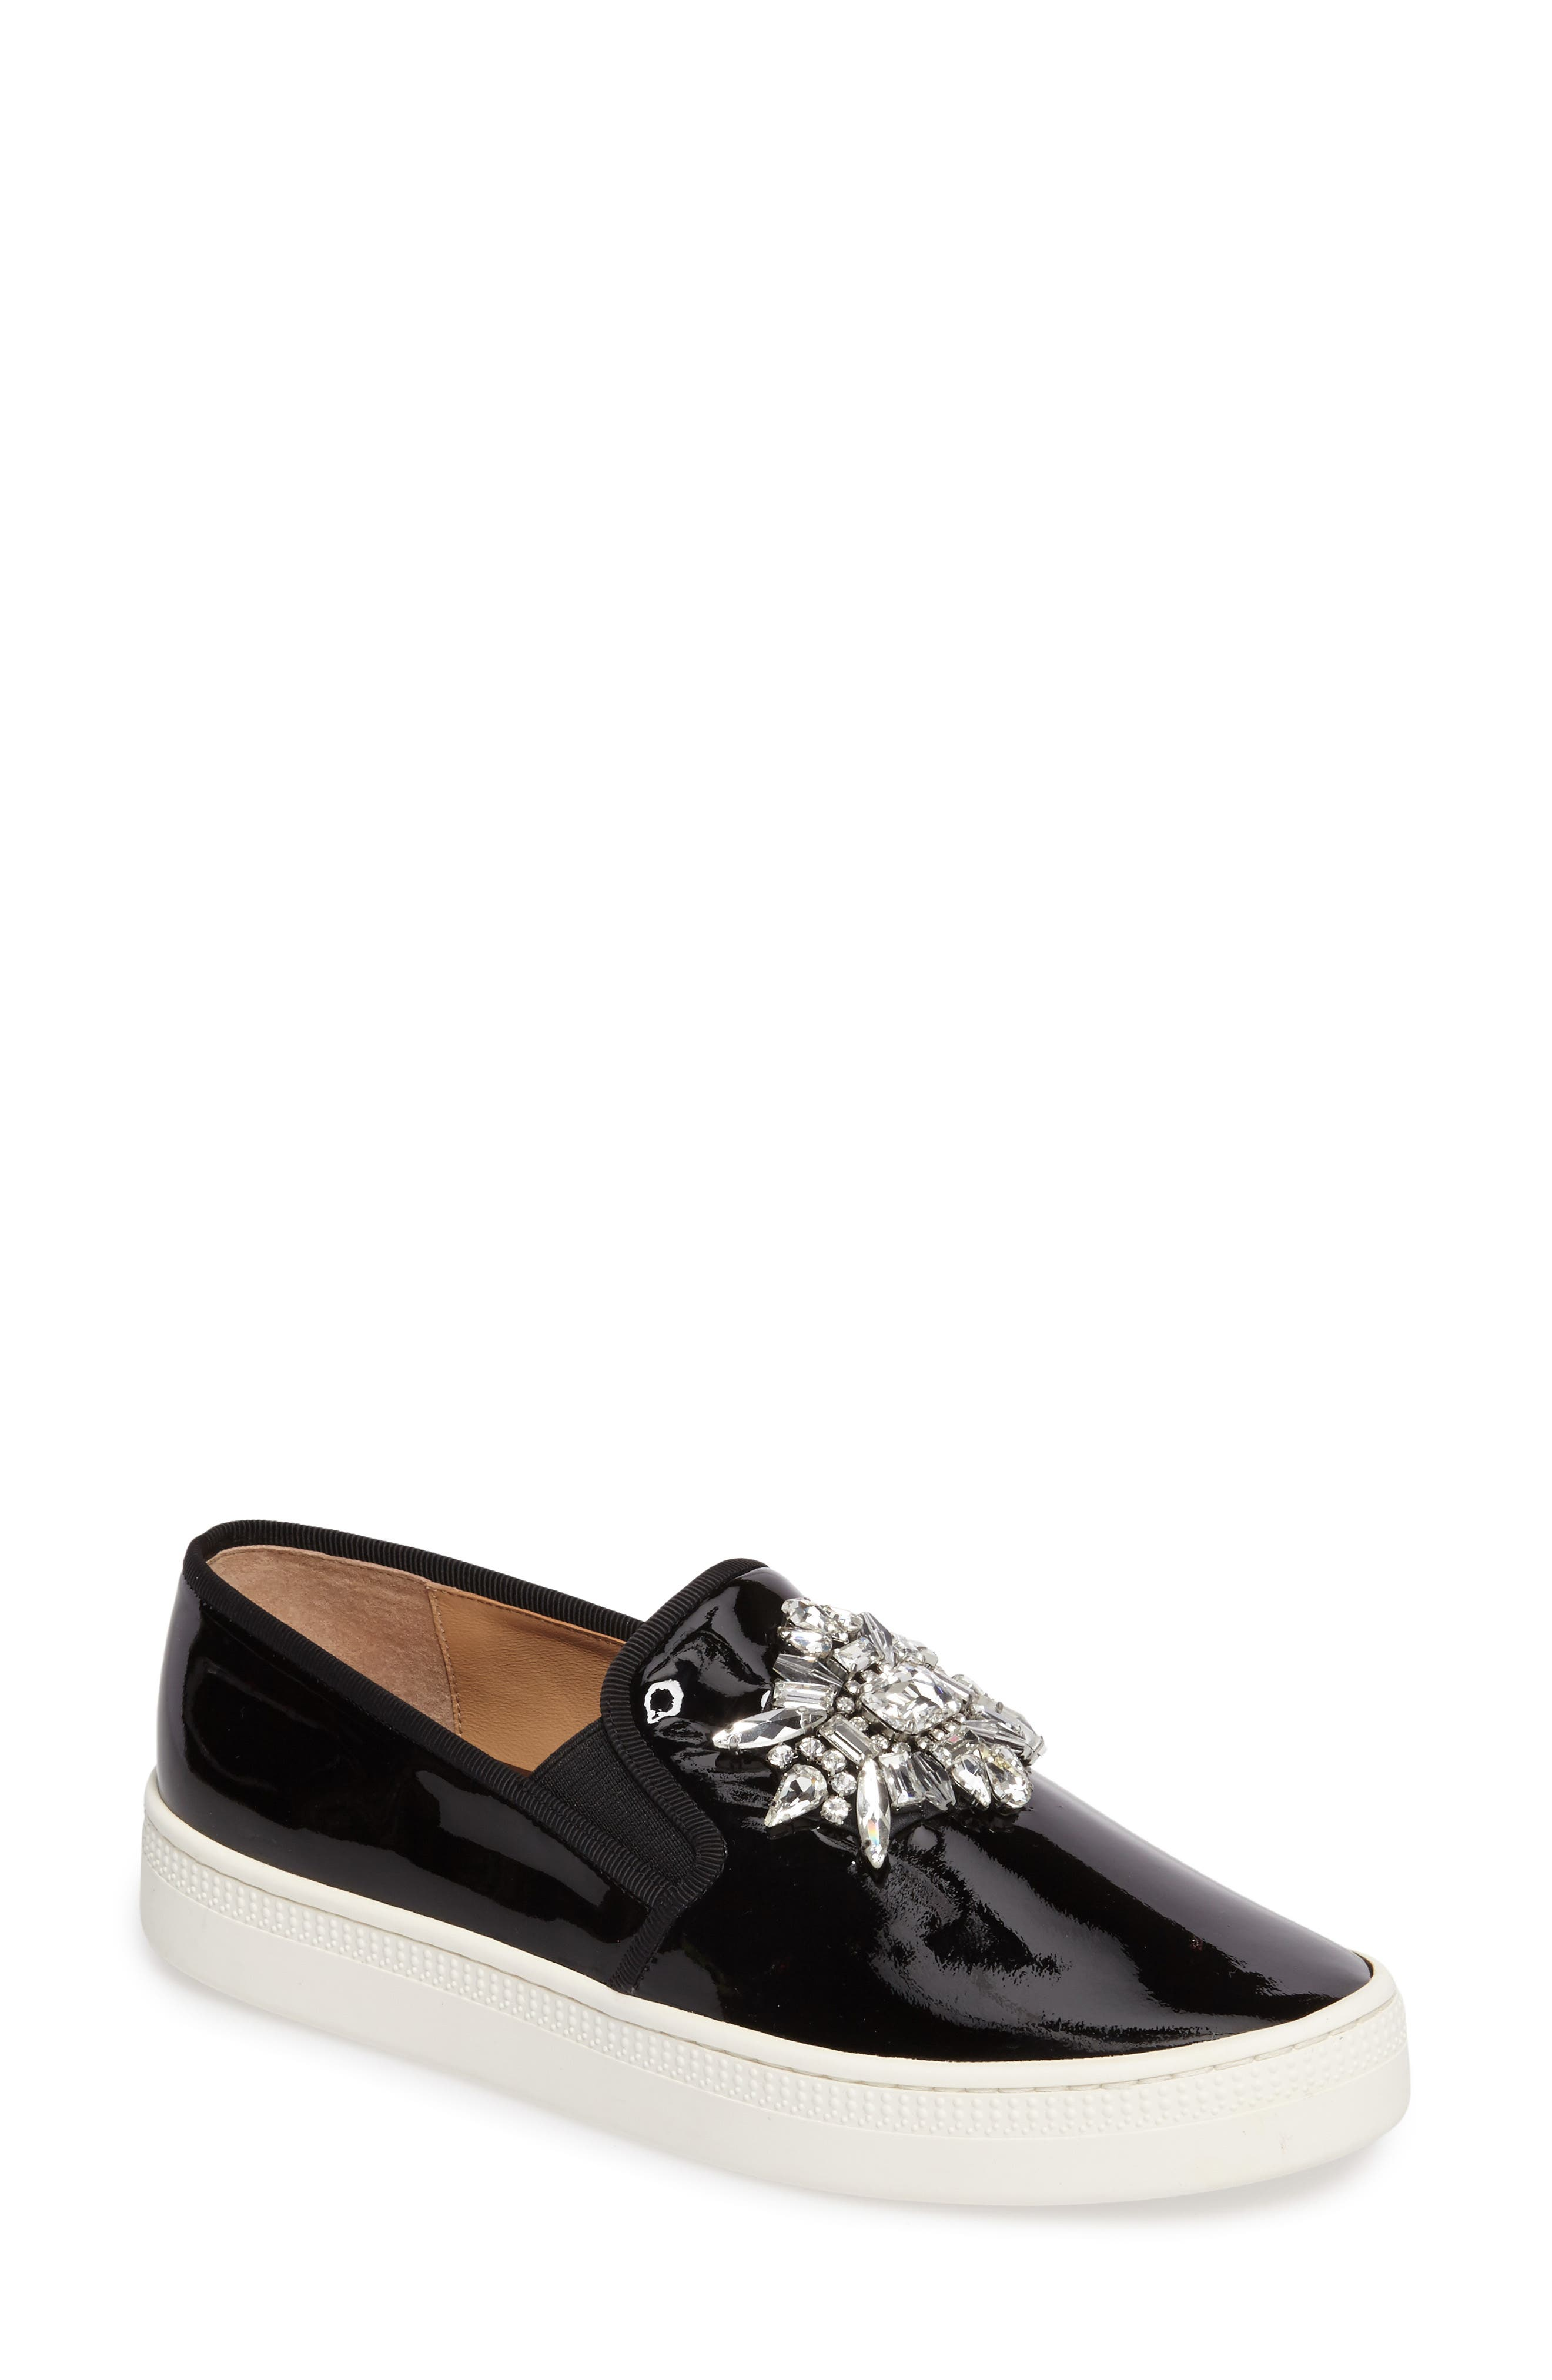 Badgley Mischka Barre Crystal Embellished Slip-On Sneaker,                             Main thumbnail 1, color,                             011